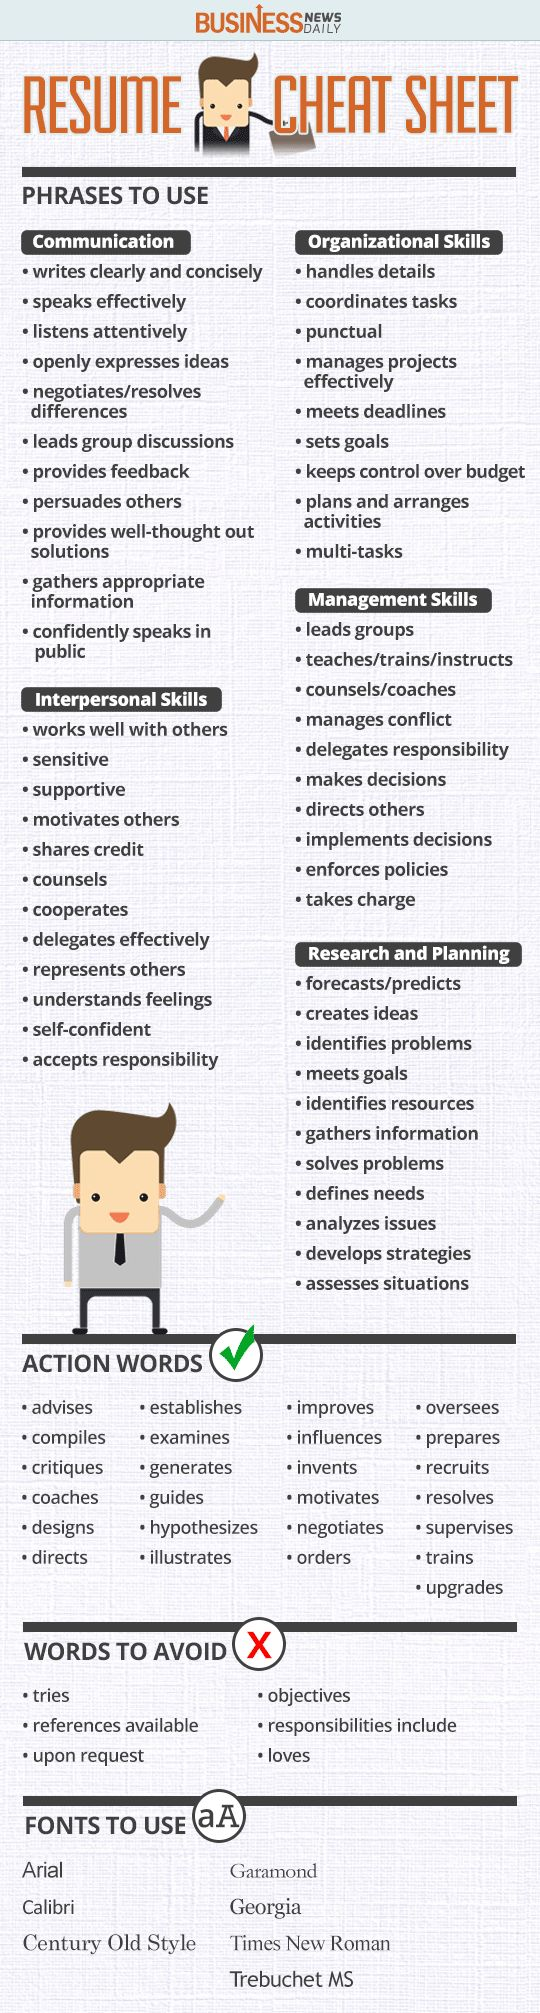 Opposenewapstandardsus  Picturesque  Ideas About Resume On Pinterest  Cv Format Resume Cv And  With Hot Resume Cheat Sheet Infographic Andrews Almost Done With A Complete Unit On Employment Which With Extraordinary Resume Examples First Job Also Crna Resume In Addition Combination Resume Definition And Update My Resume As Well As Good Skills To Have On Resume Additionally Child Care Worker Resume From Pinterestcom With Opposenewapstandardsus  Hot  Ideas About Resume On Pinterest  Cv Format Resume Cv And  With Extraordinary Resume Cheat Sheet Infographic Andrews Almost Done With A Complete Unit On Employment Which And Picturesque Resume Examples First Job Also Crna Resume In Addition Combination Resume Definition From Pinterestcom